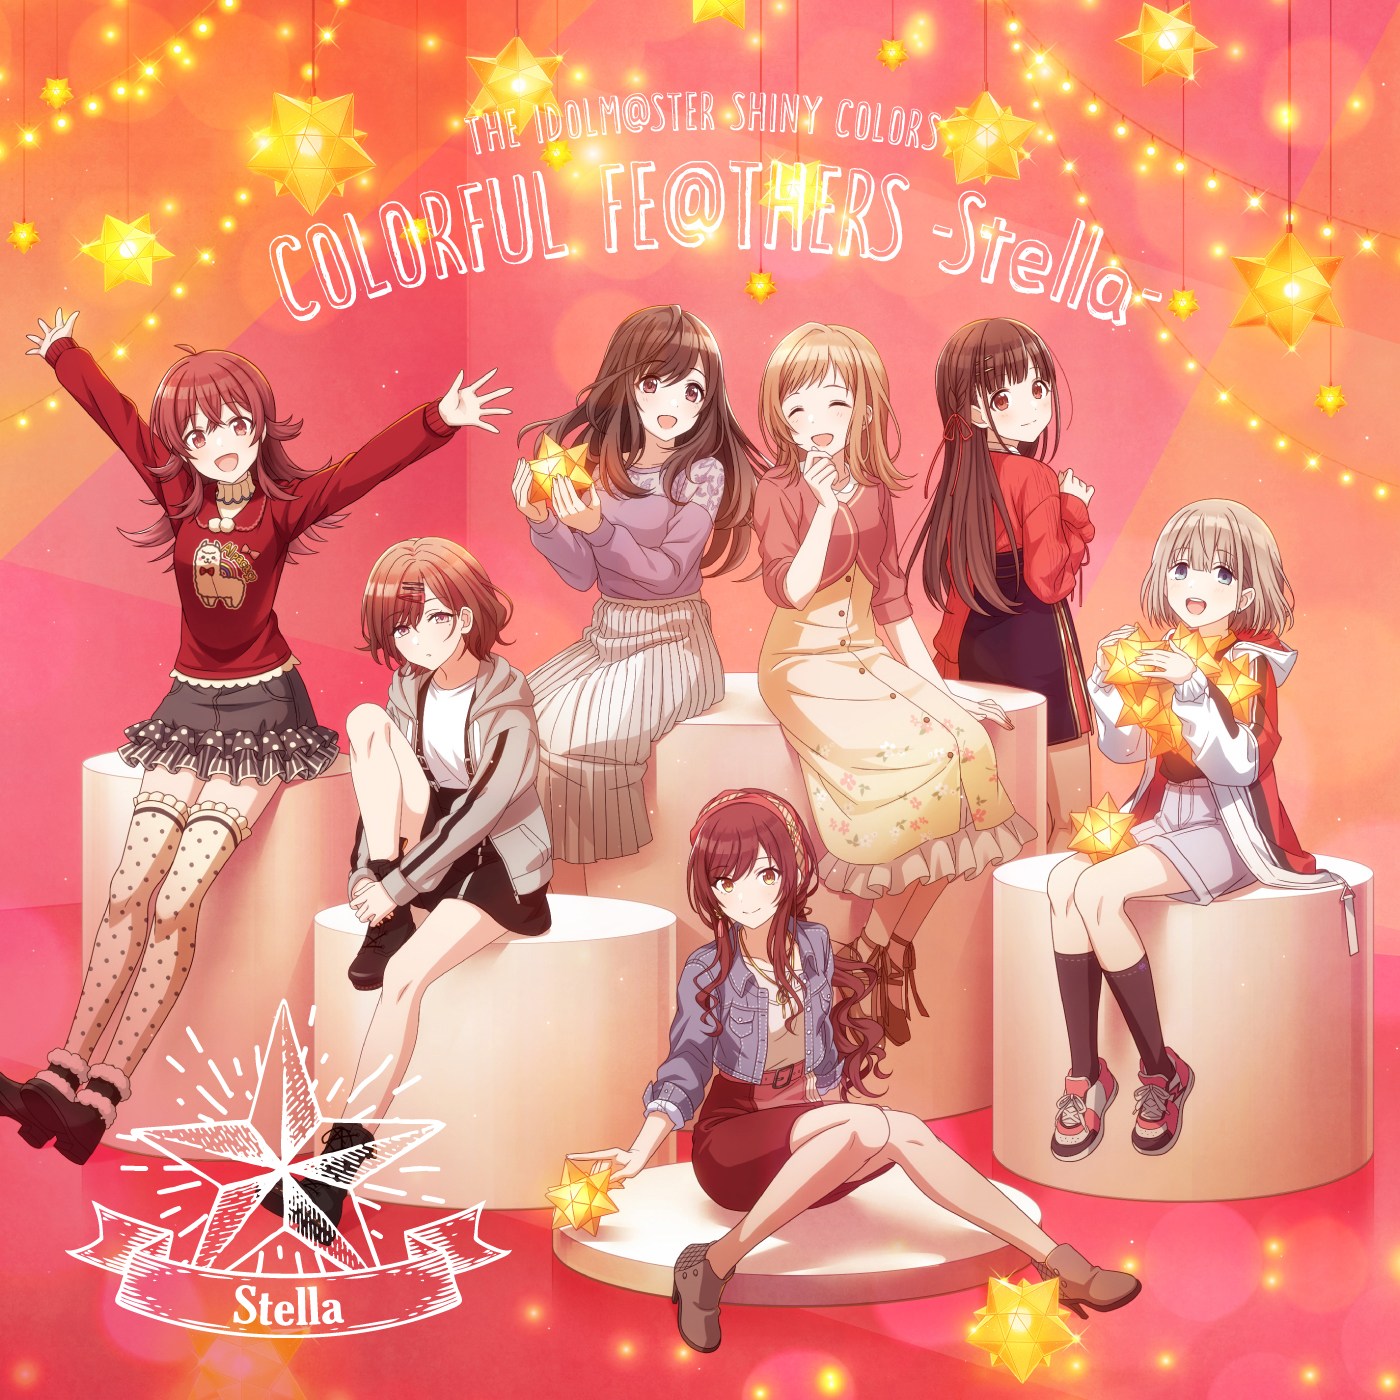 THE IDOLM@STER MASTER SHINY COLORS「COLORFUL FE@THERS -Stella-」